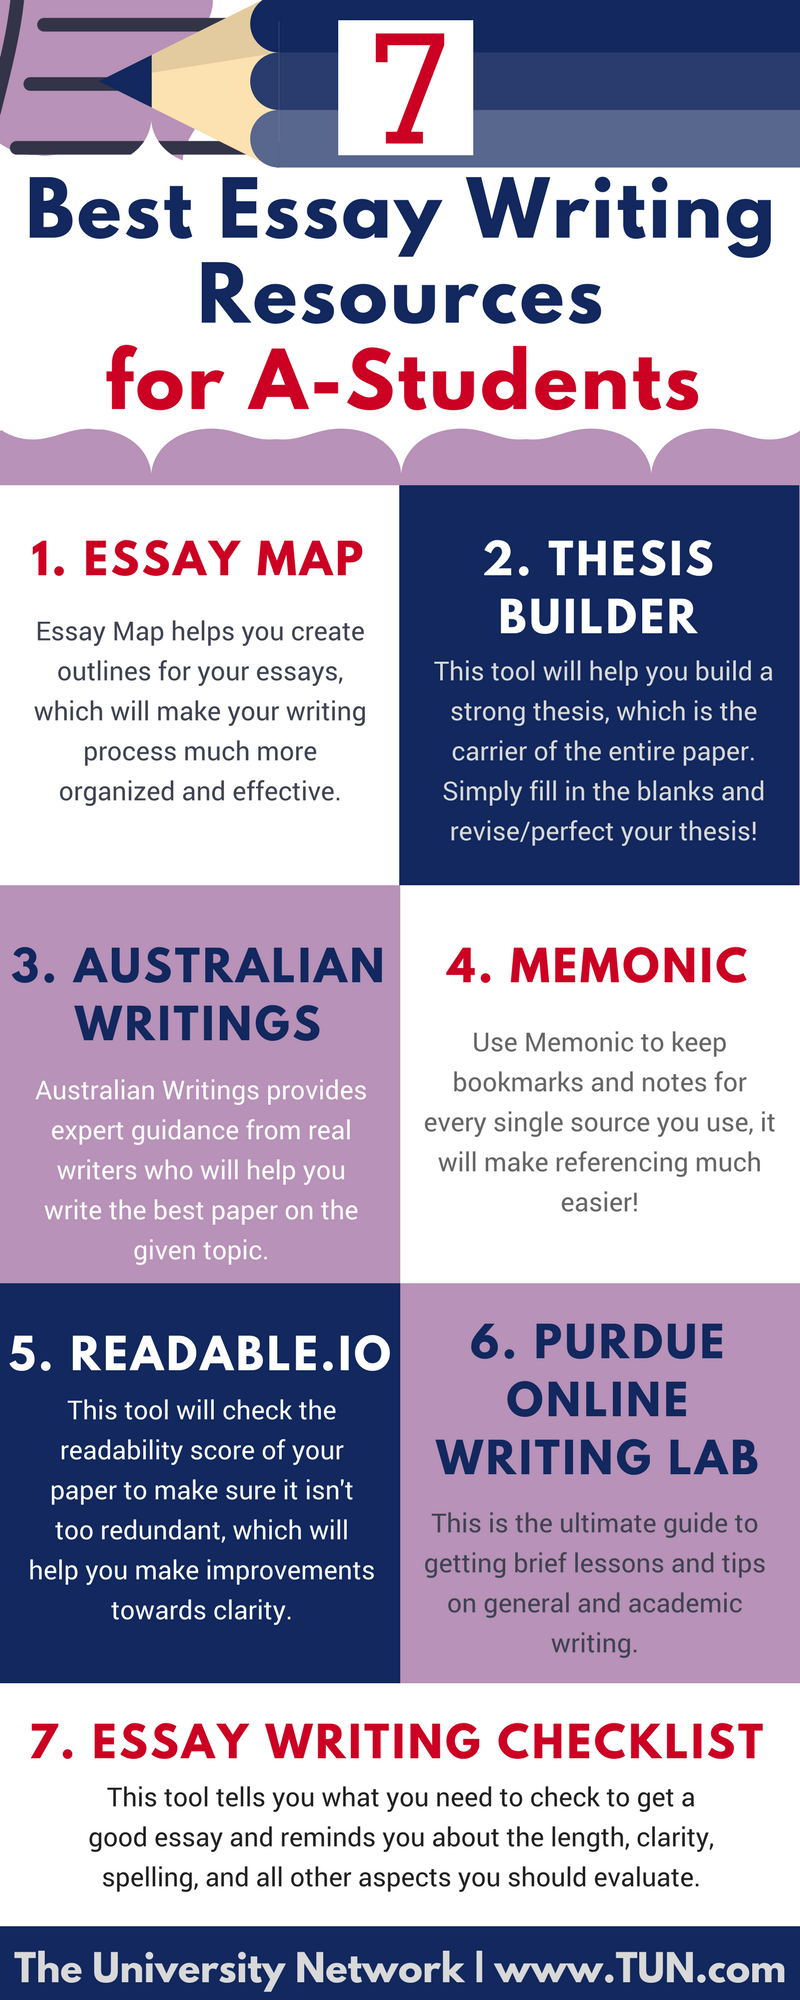 List Informative Essay Topics  Best Essay Writing Resources For Astudents An Essay About Abortion also Report Sample Essay  Best Essay Writing Resources For Astudents  College  Tips  If By Rudyard Kipling Essay